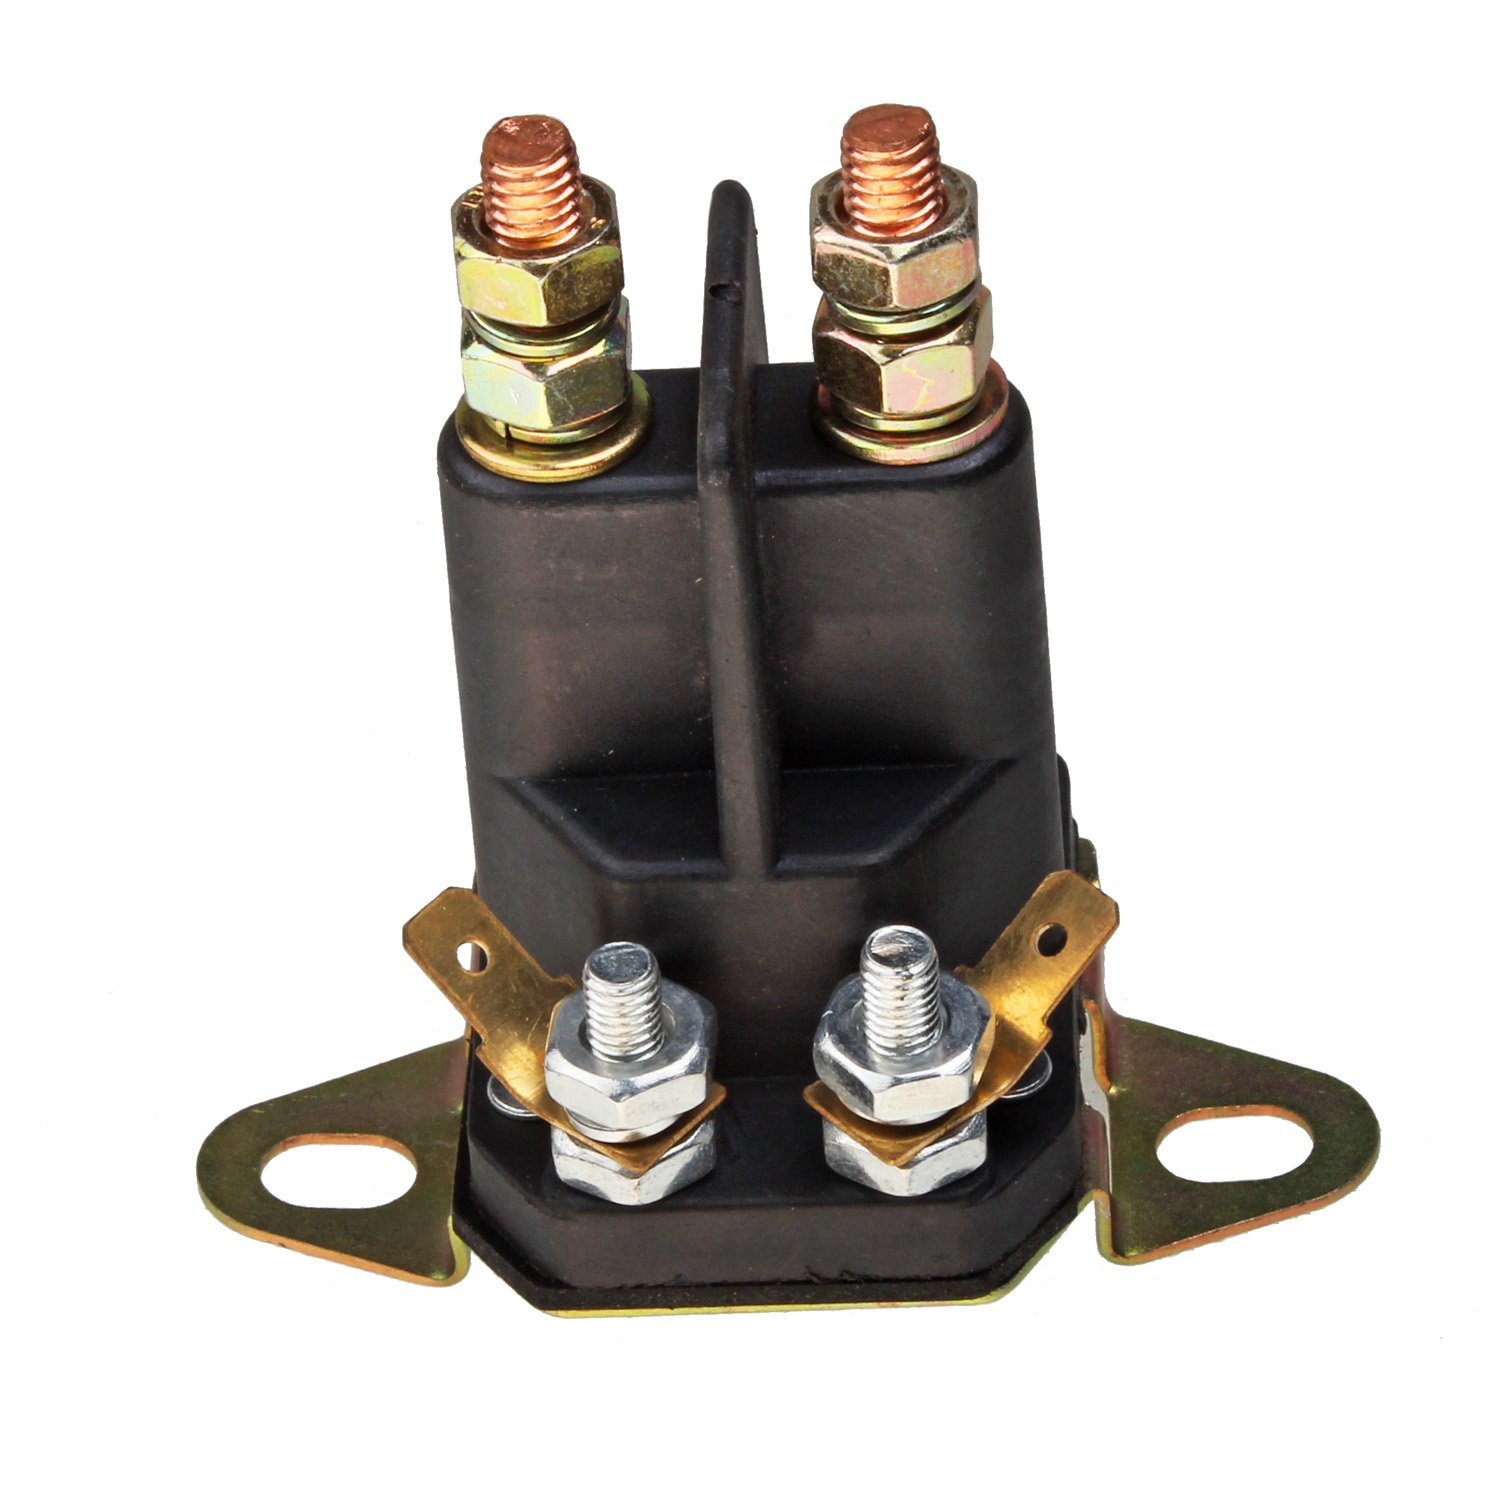 Mover Parts 532 178861 Starter Solenoid for Husqvarna Craftsman Poulan AYP 12V